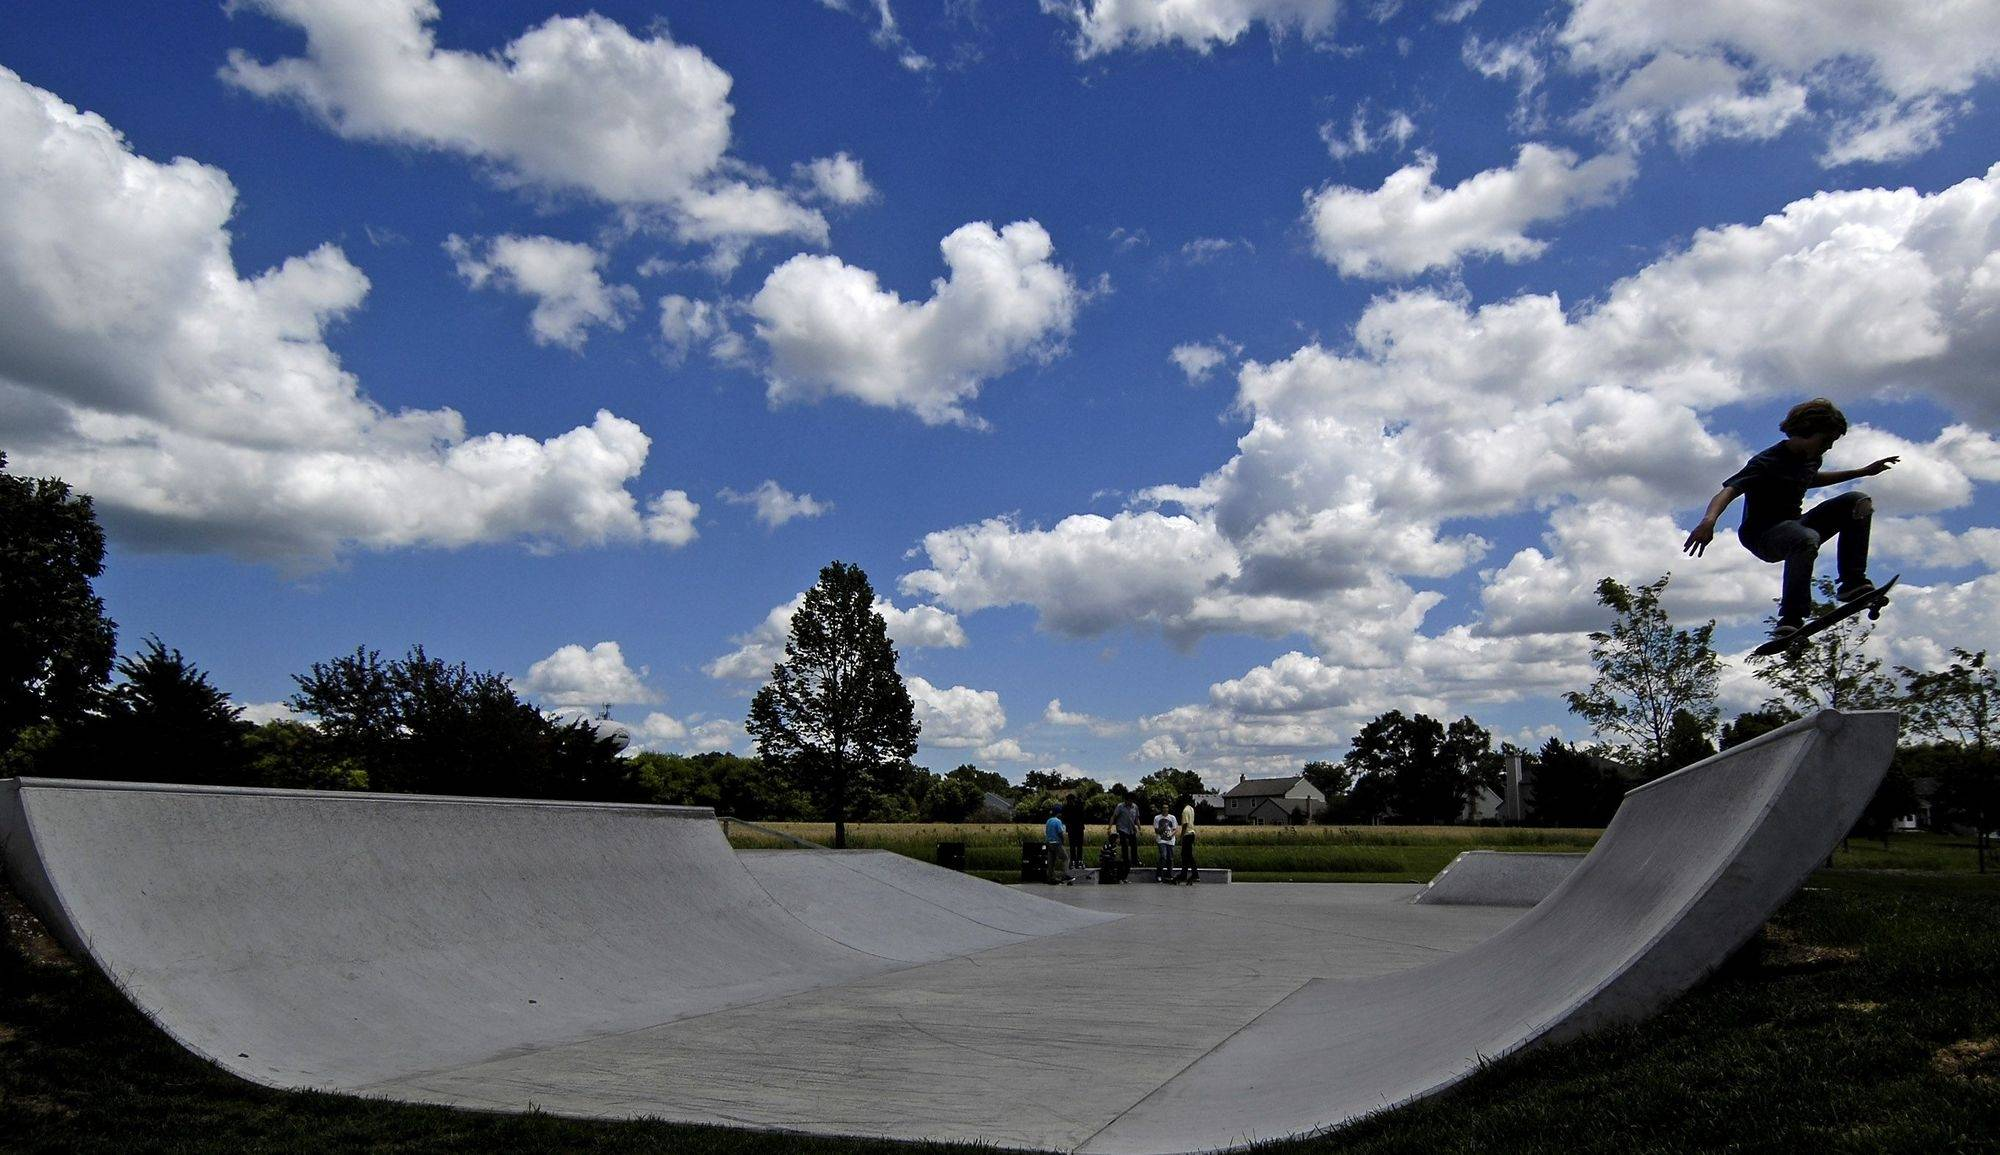 Kids use the skate park at Huffman Park in West Dundee Monday. Neighbors are complaining that the skate park is attracting some unsavory characters who cut through yards and commit petty crimes.